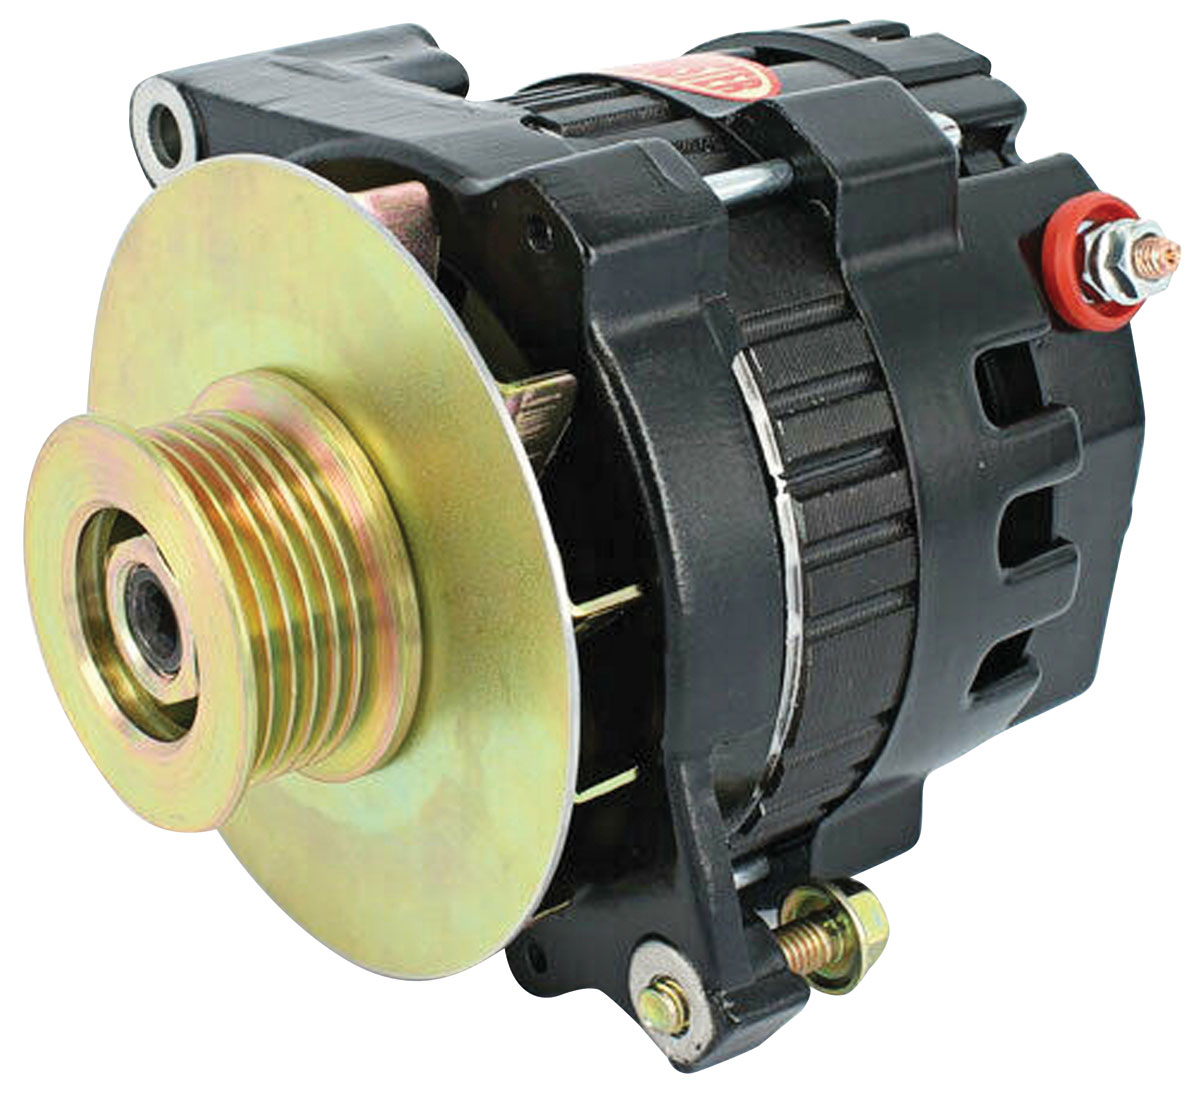 Alternator, Powermaster, 1954-88 GM, CS121, XS Volt, 100A, 6-rib Pulley